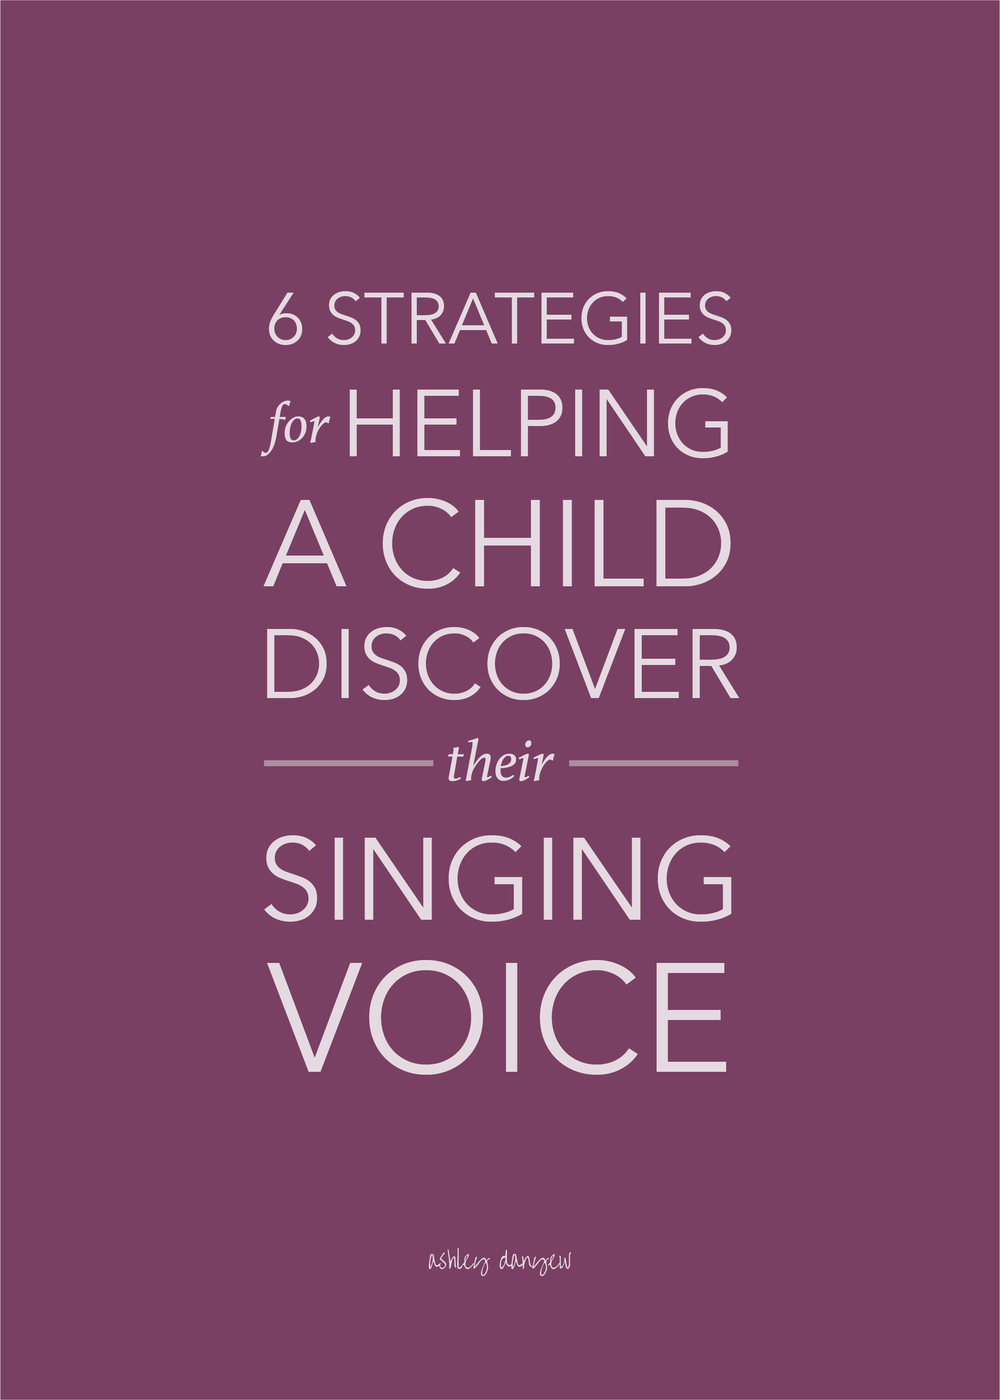 6 Strategies for Helping a Child Discover Their Singing Voice